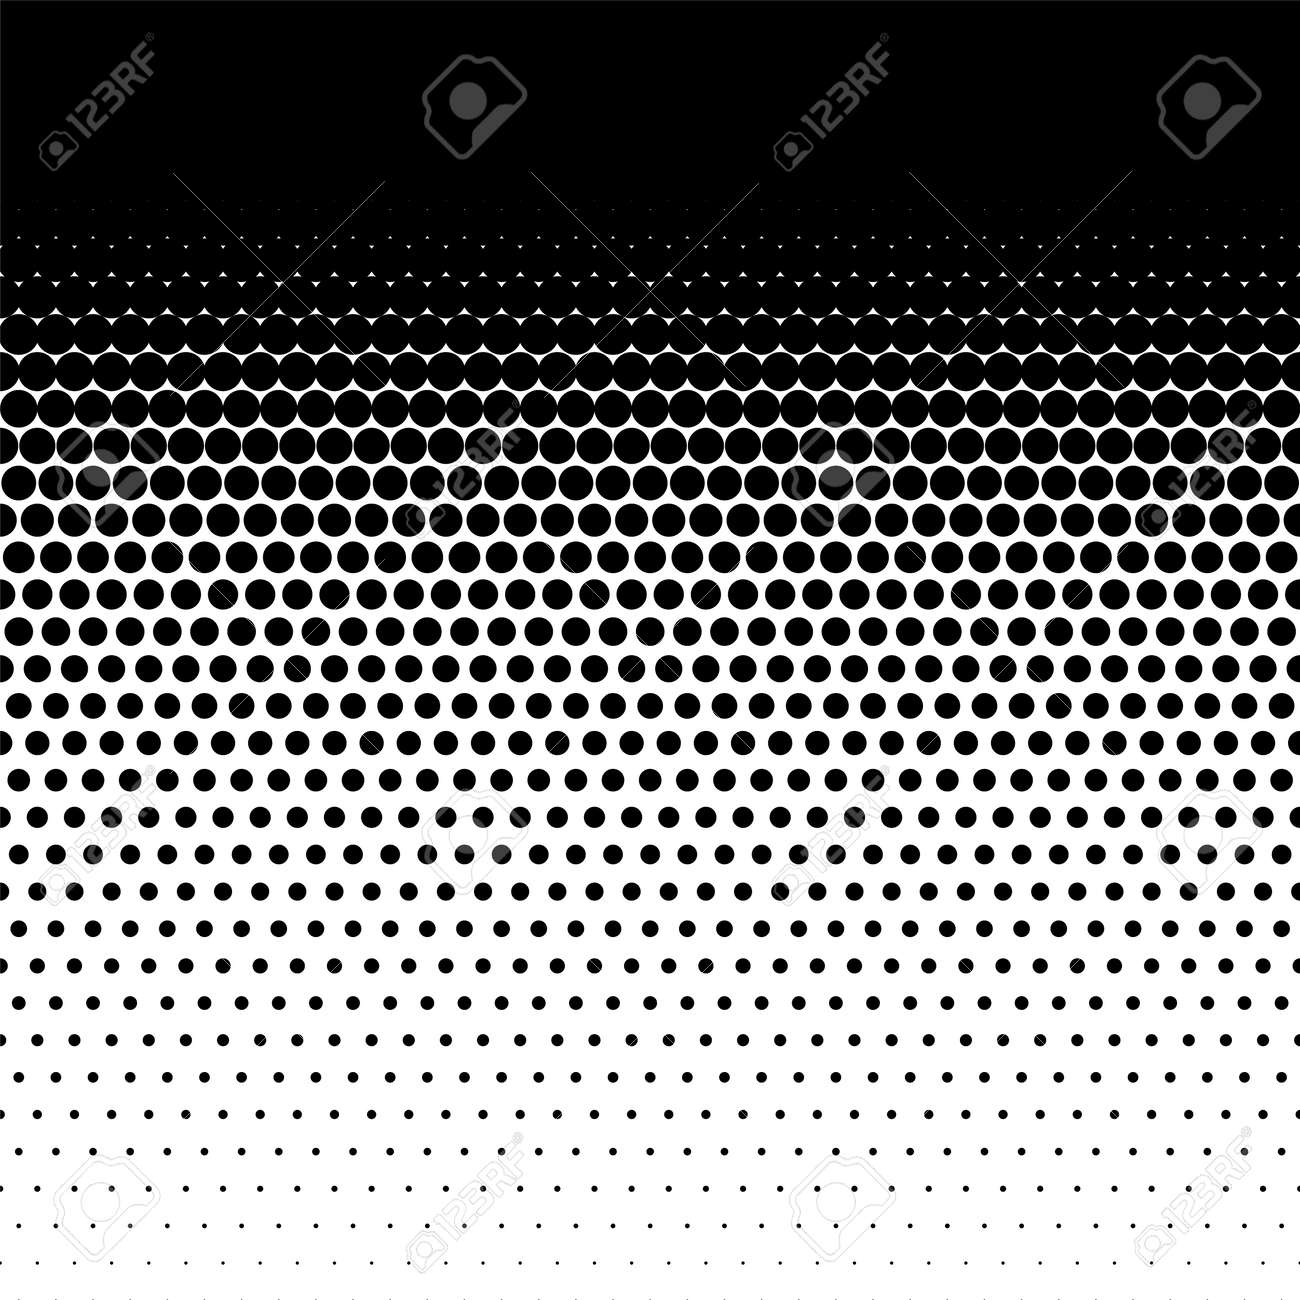 Halftone dots pattern, comic points fade background - 171052335